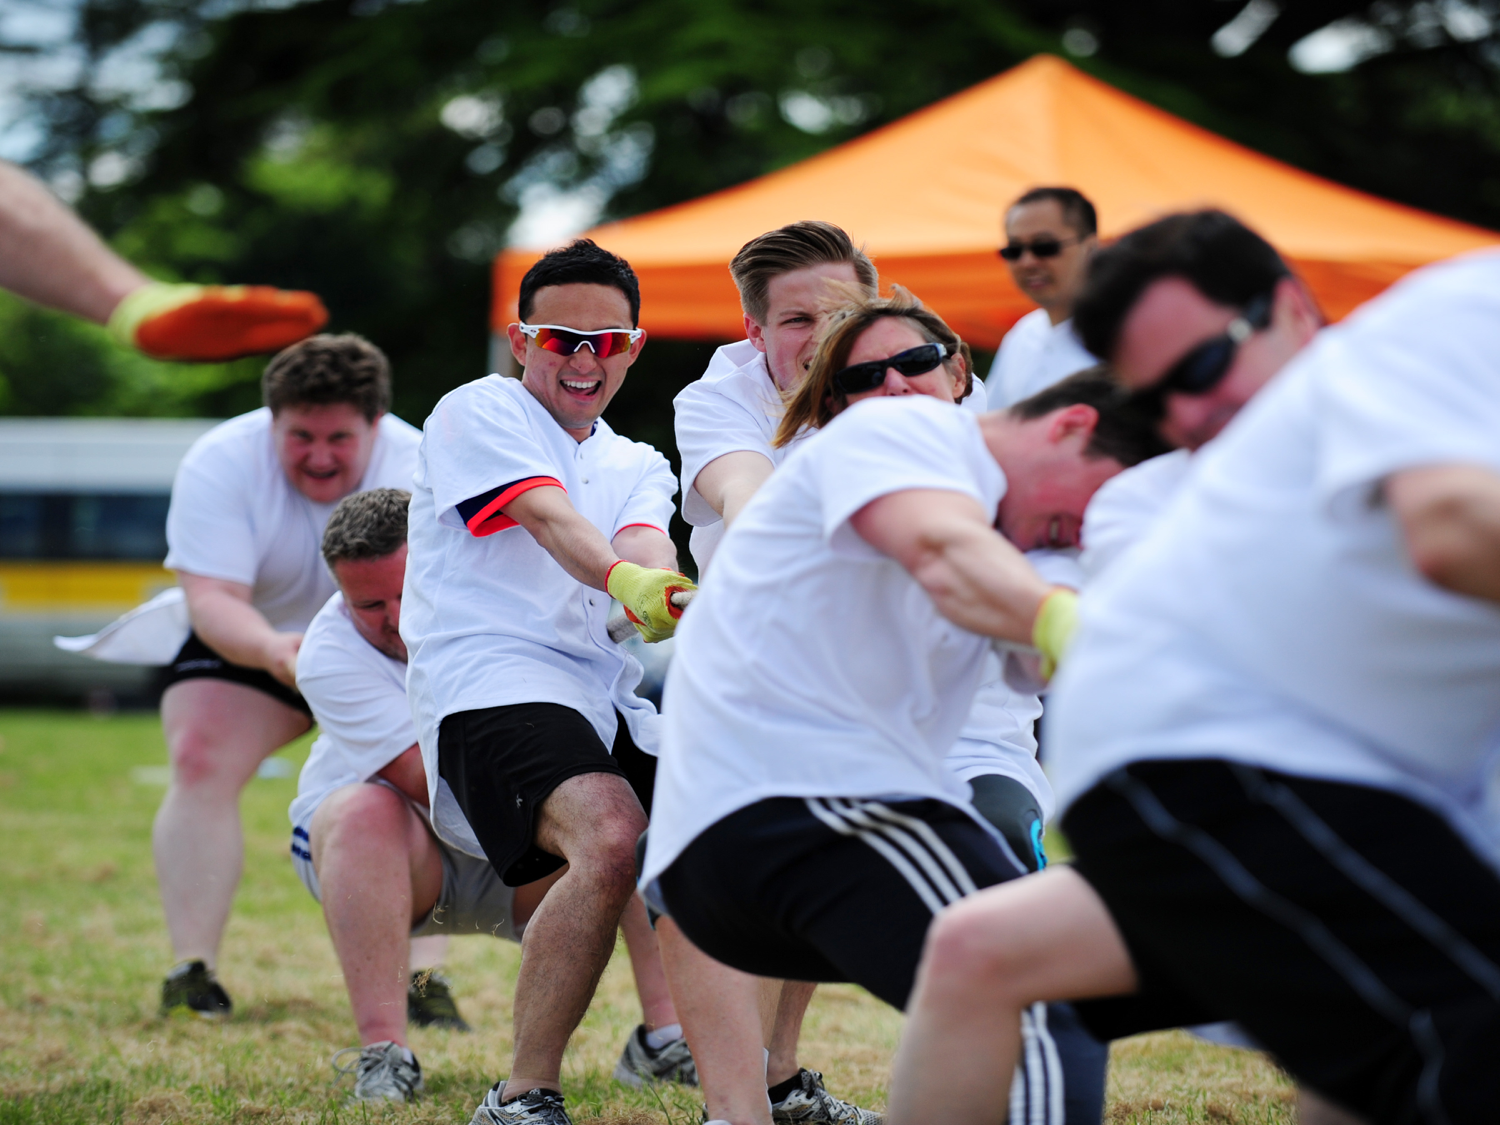 Team-Building or Team-Destroying? How To Boost Positive Competition